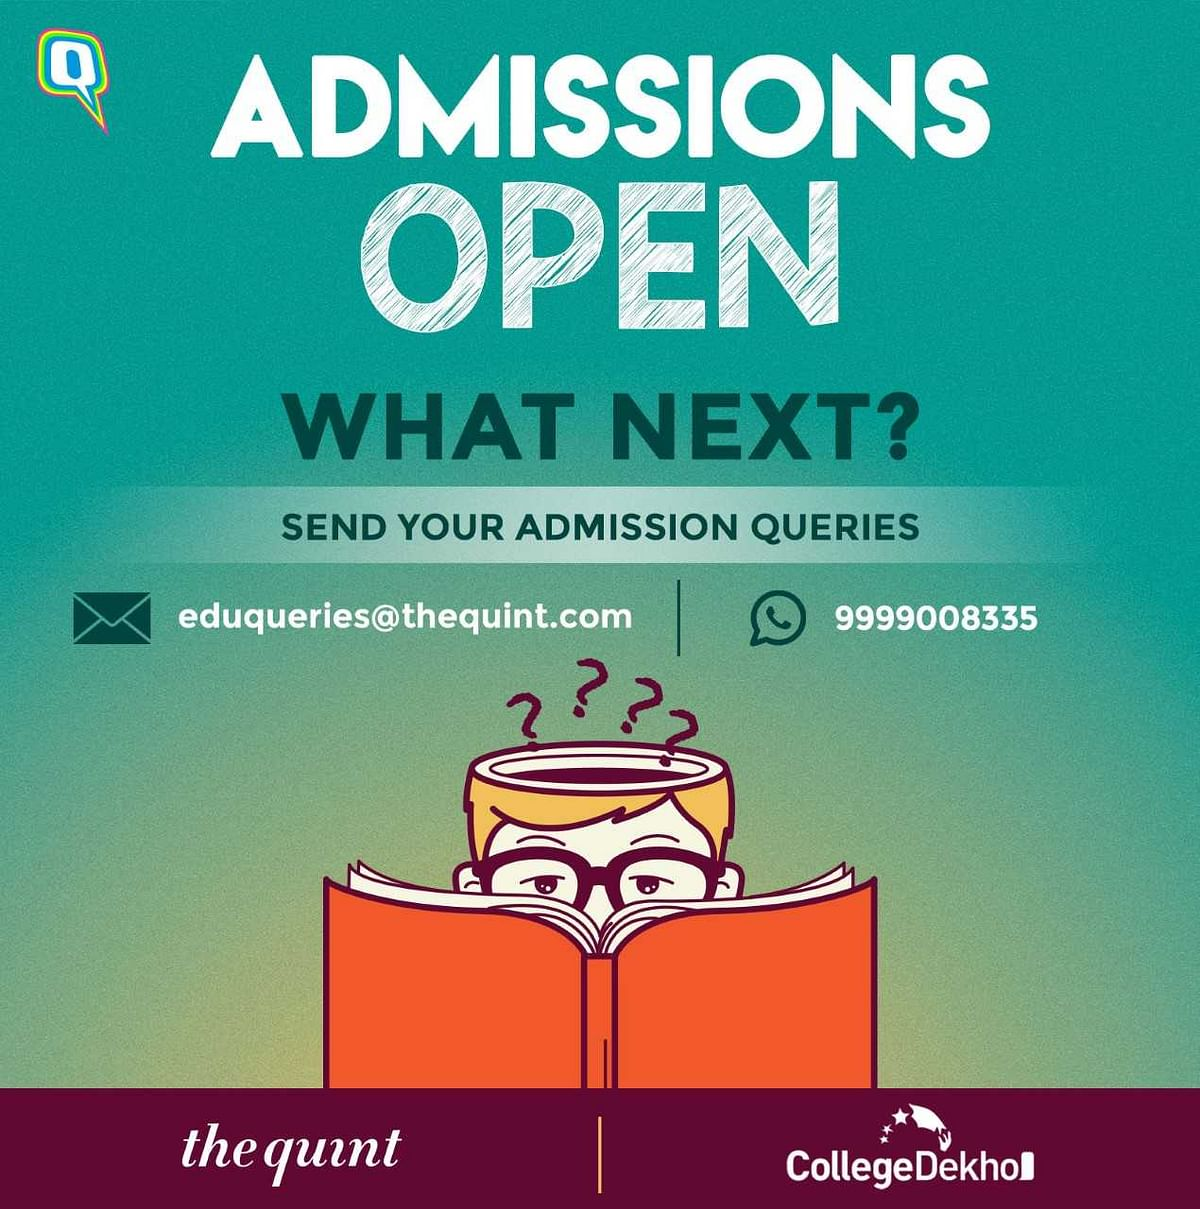 Admissions Open: Is Nutrition a Good Career Option?